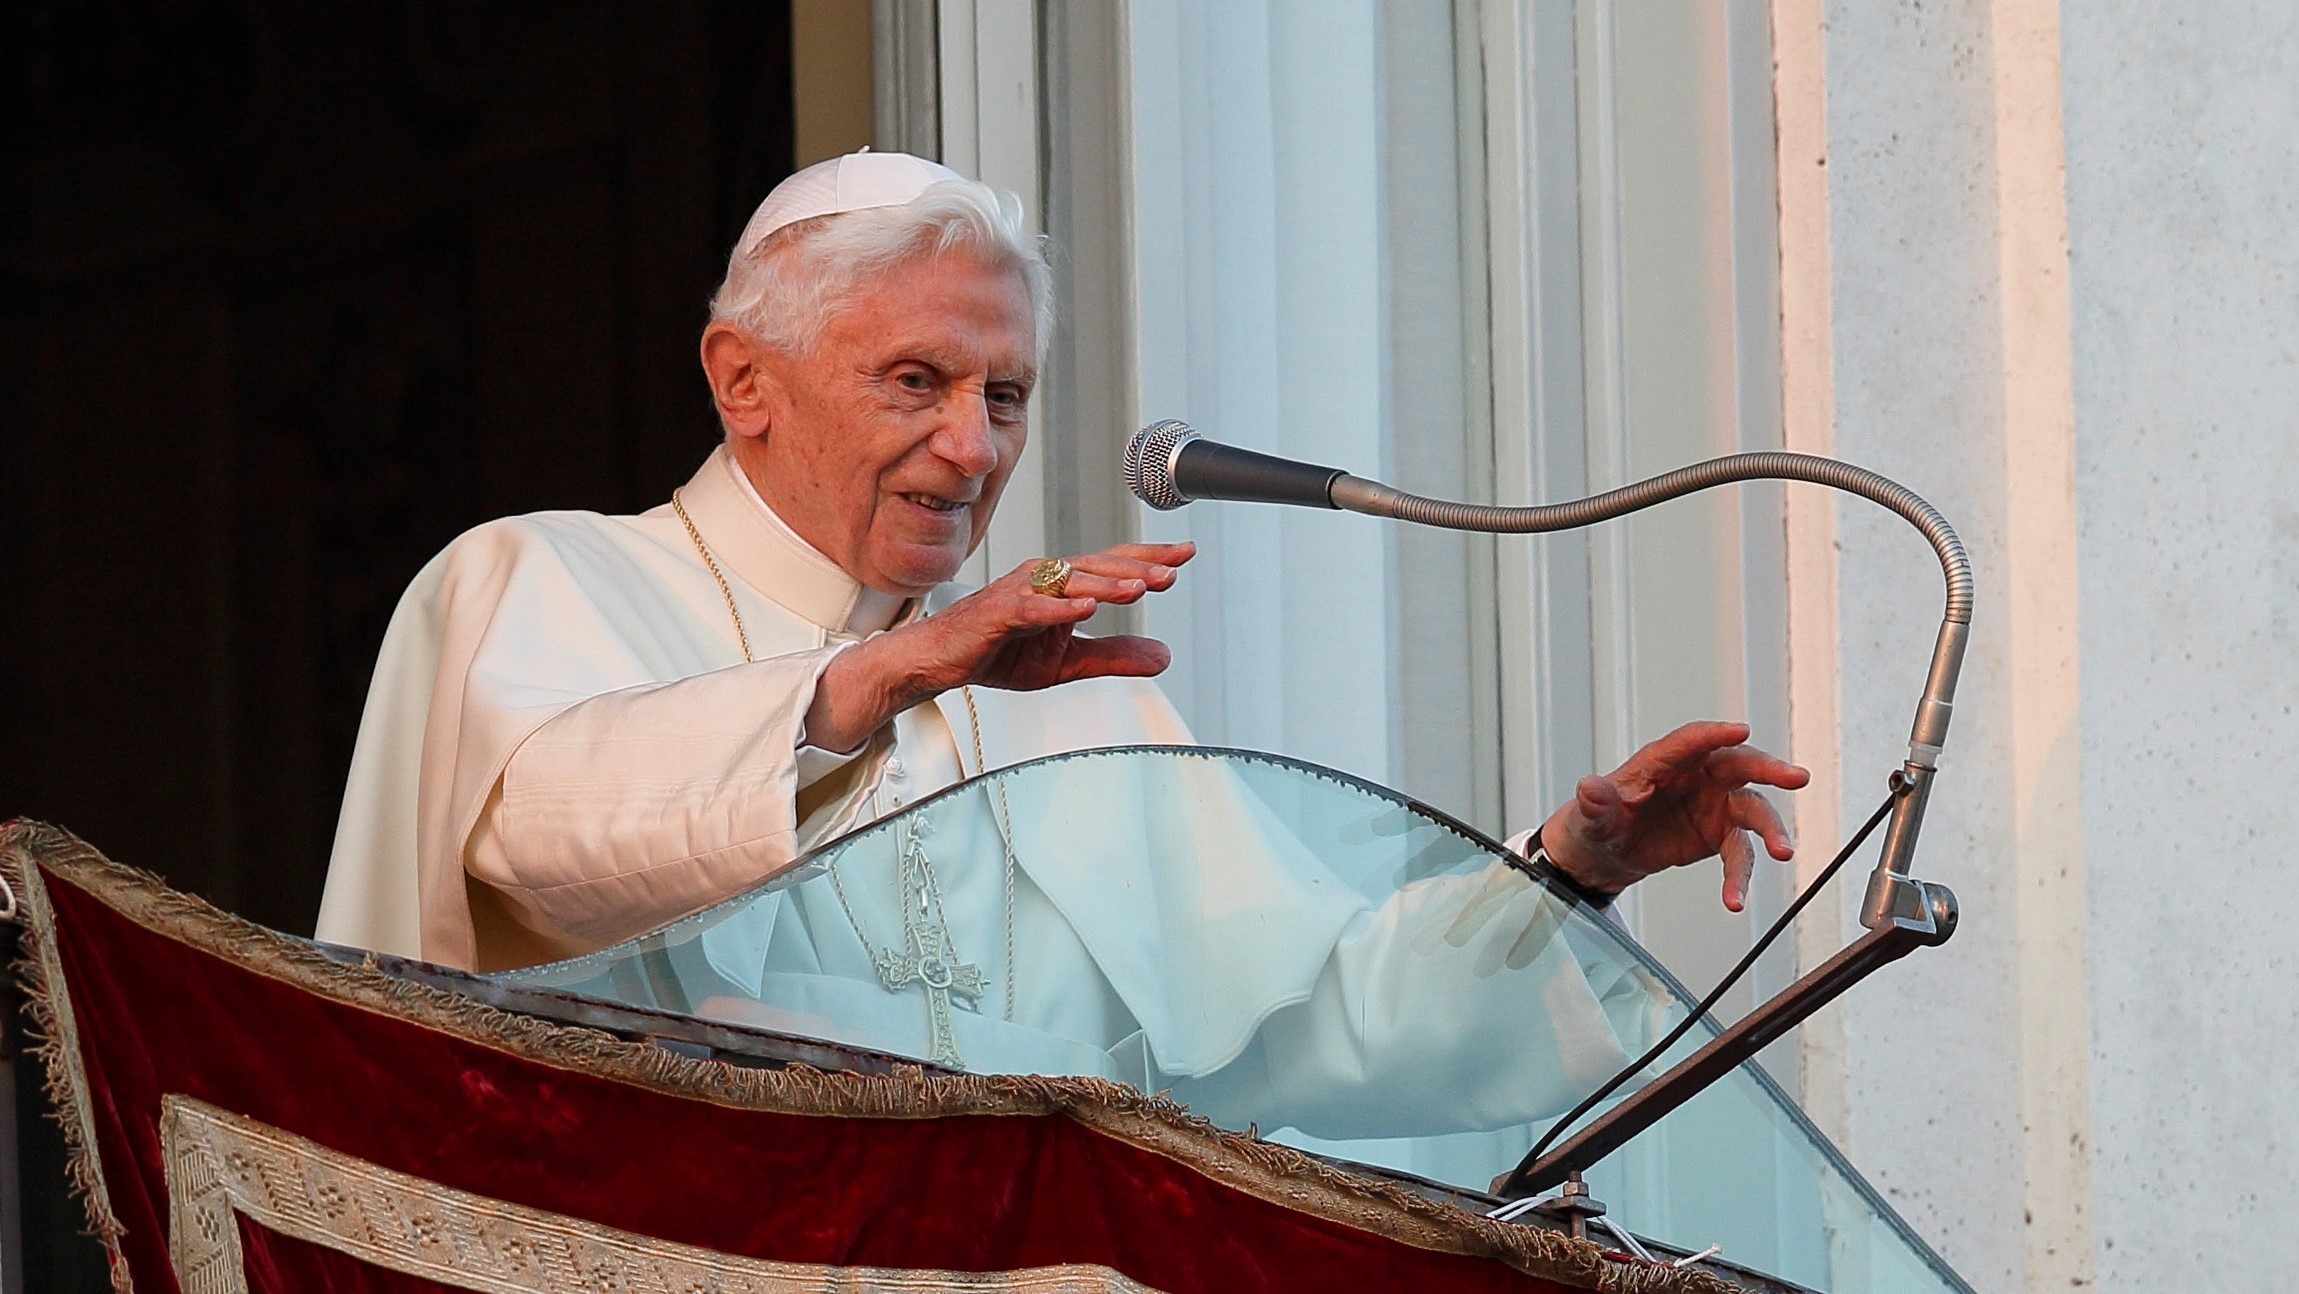 Benedict XVI as a Pope of Addition